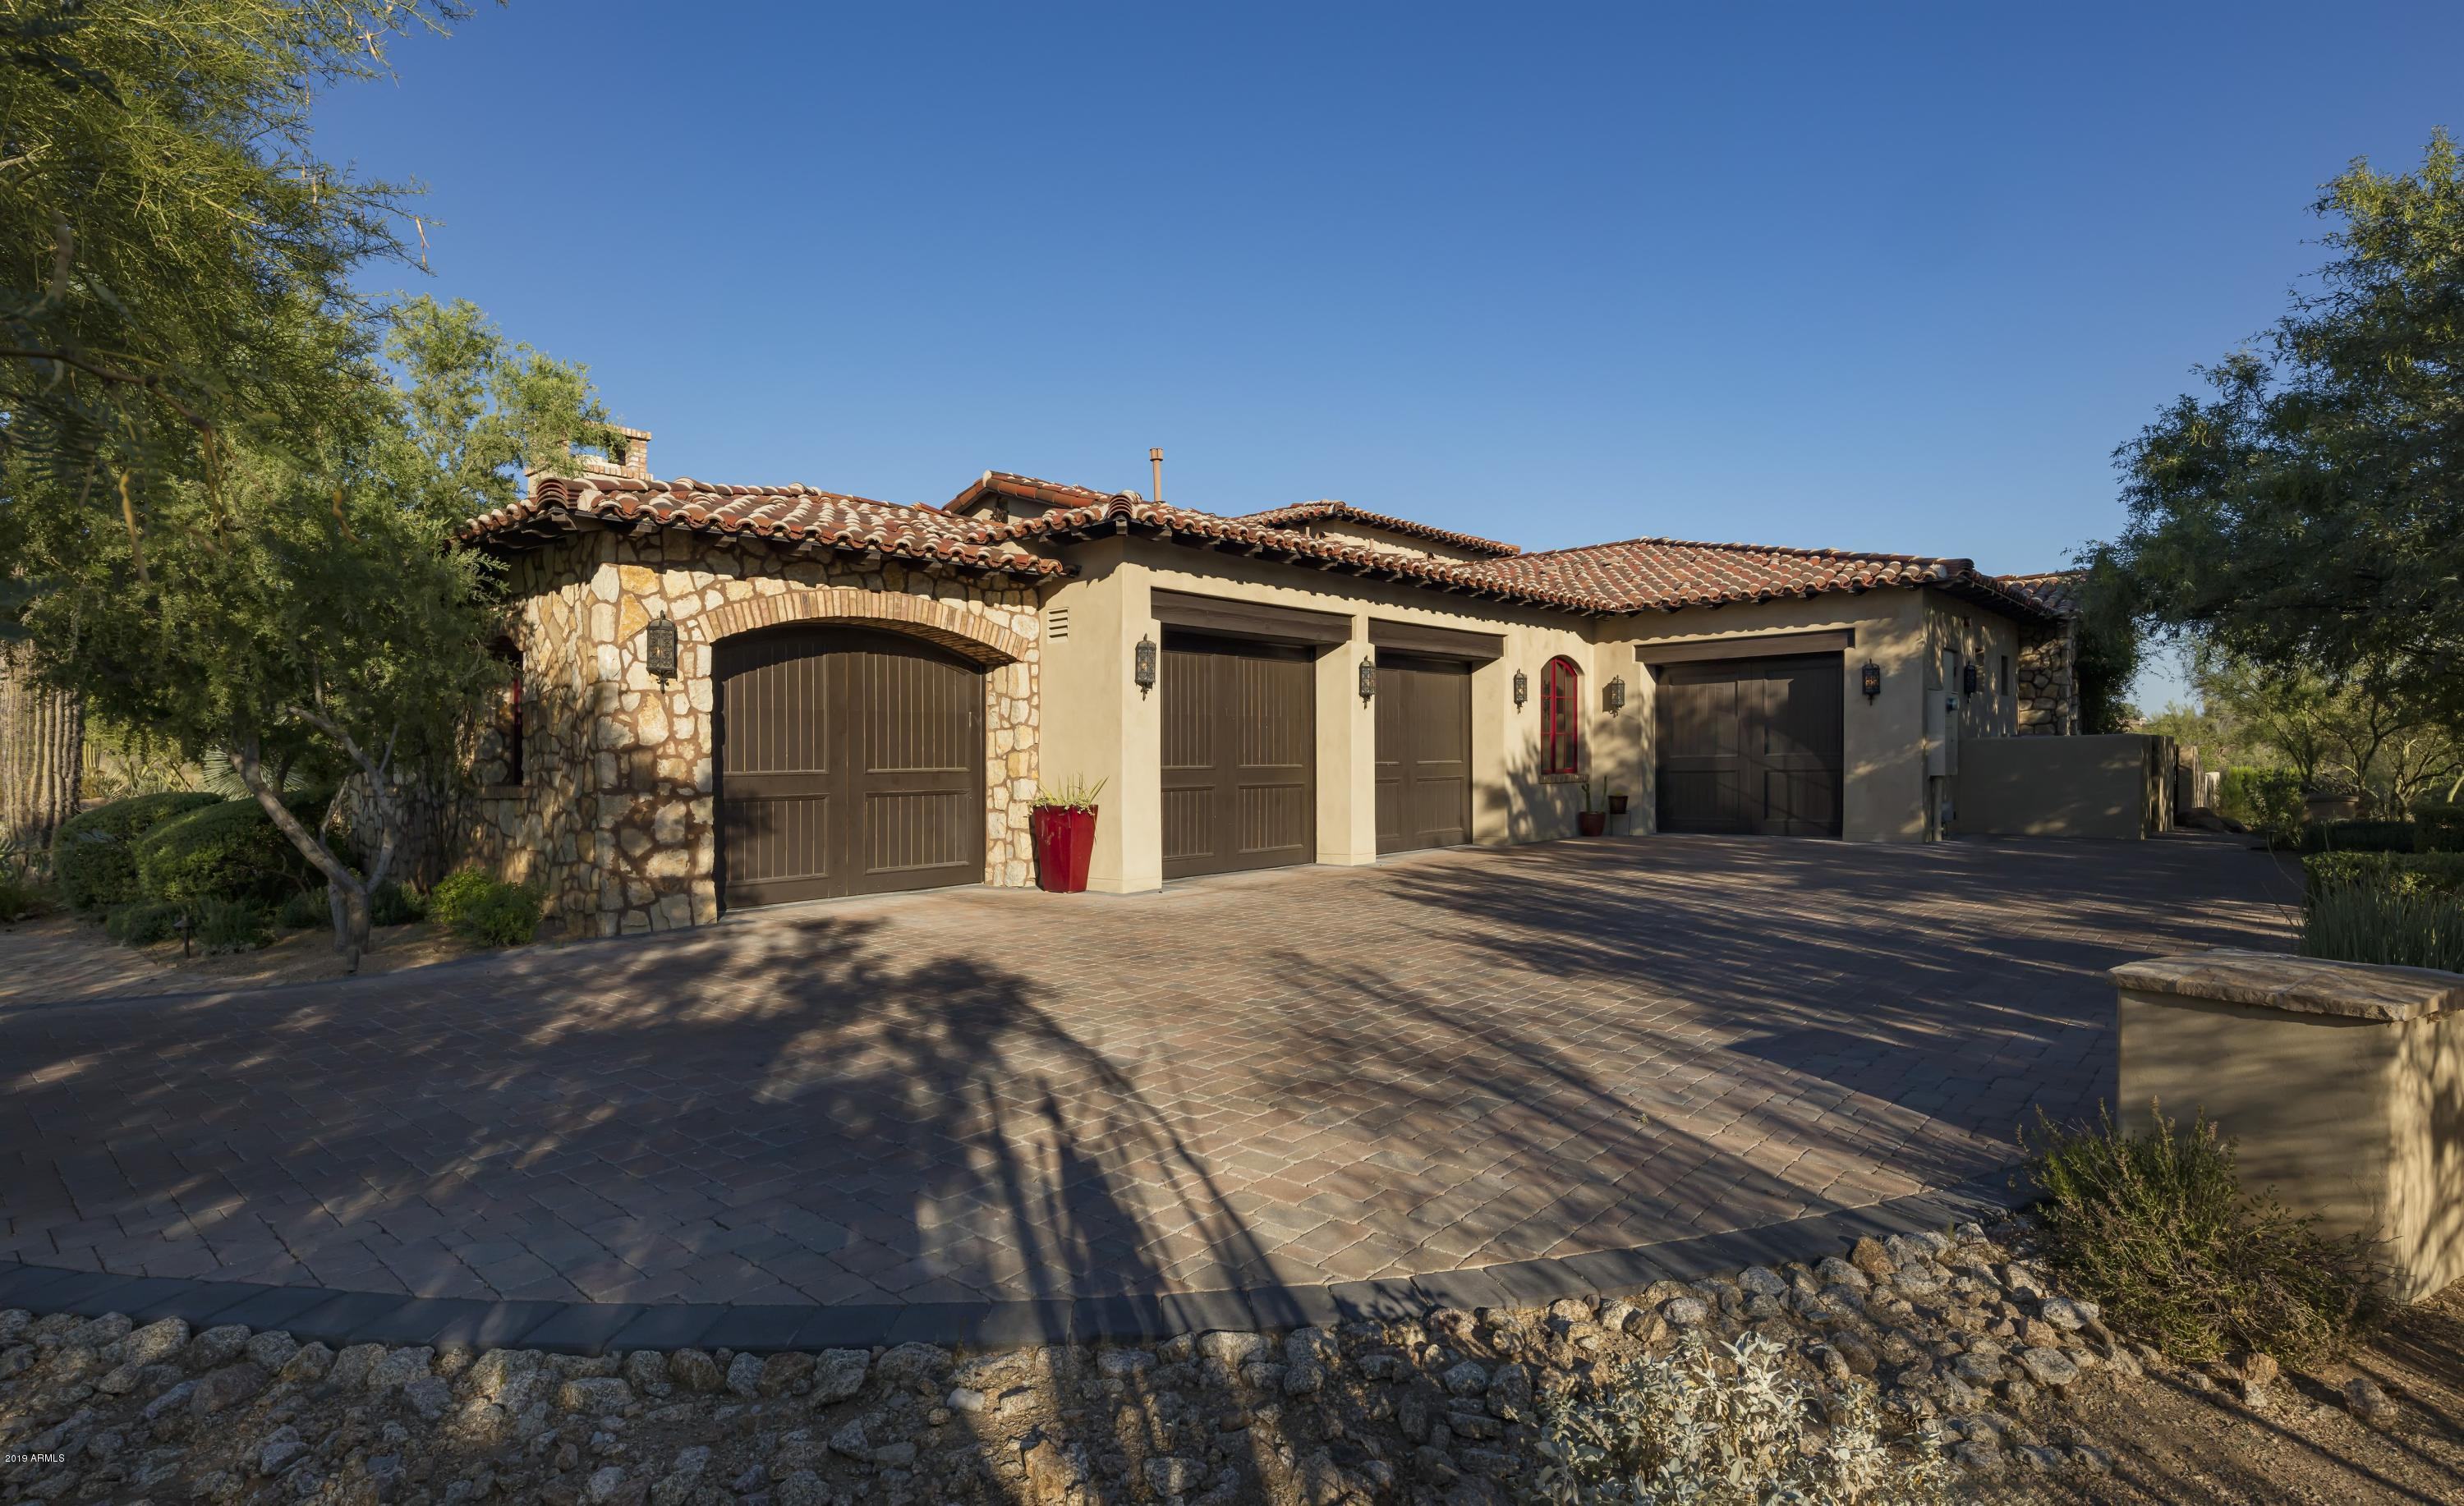 MLS 5951421 7379 E LOWER WASH Pass, Scottsdale, AZ 85266 Scottsdale AZ Whisper Rock